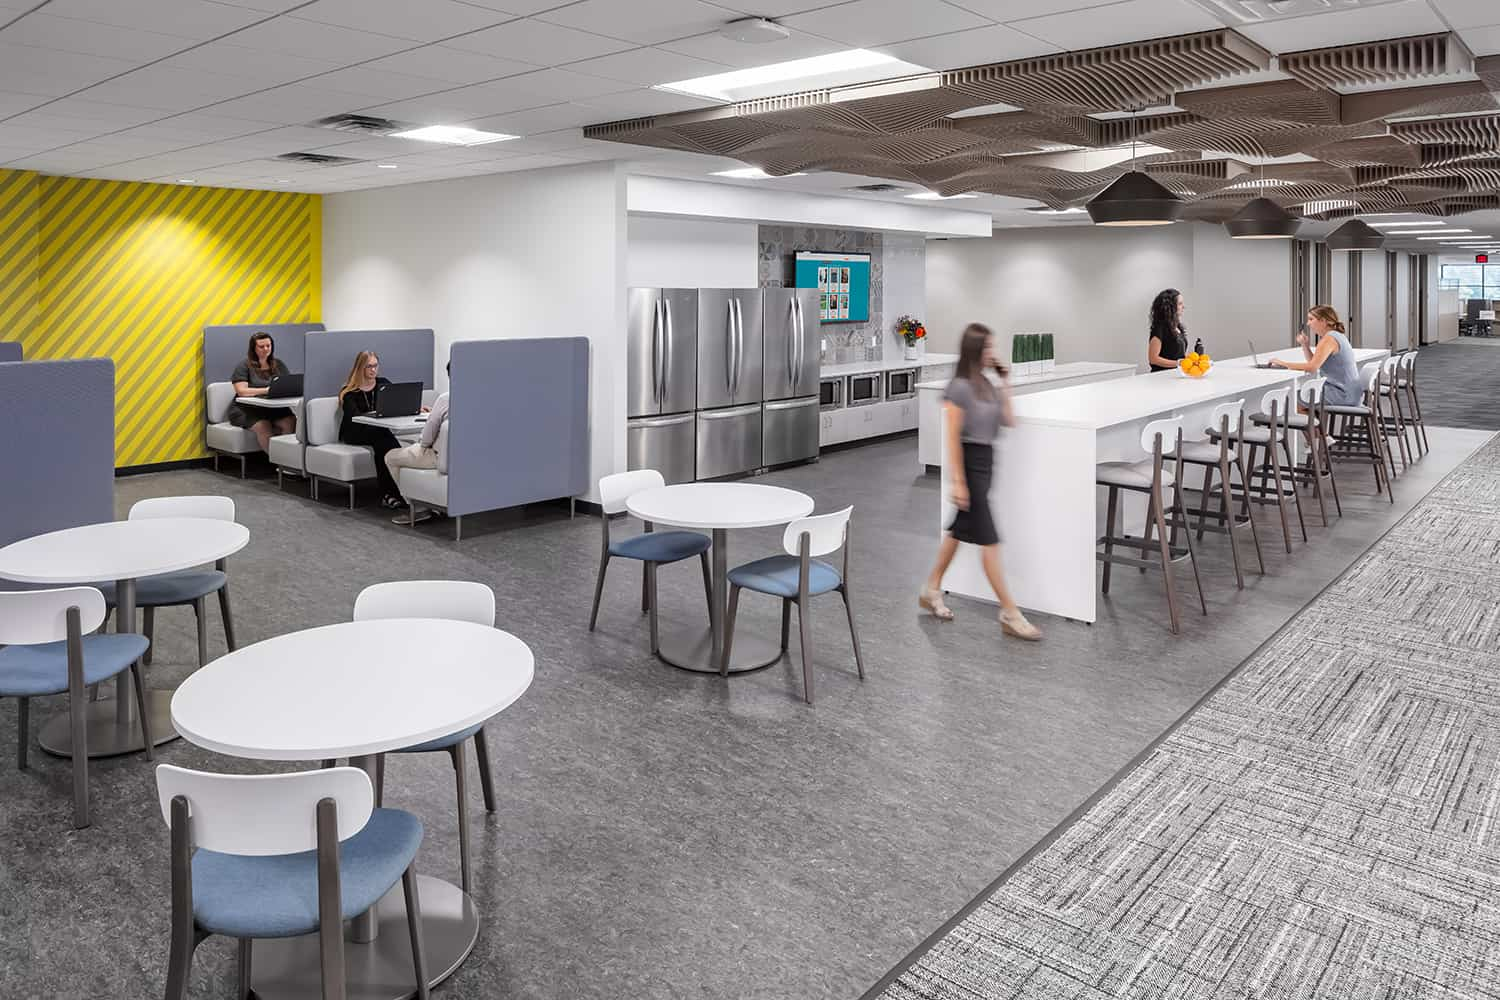 Work cafe with booths for focused conversations and open touchdown seating.